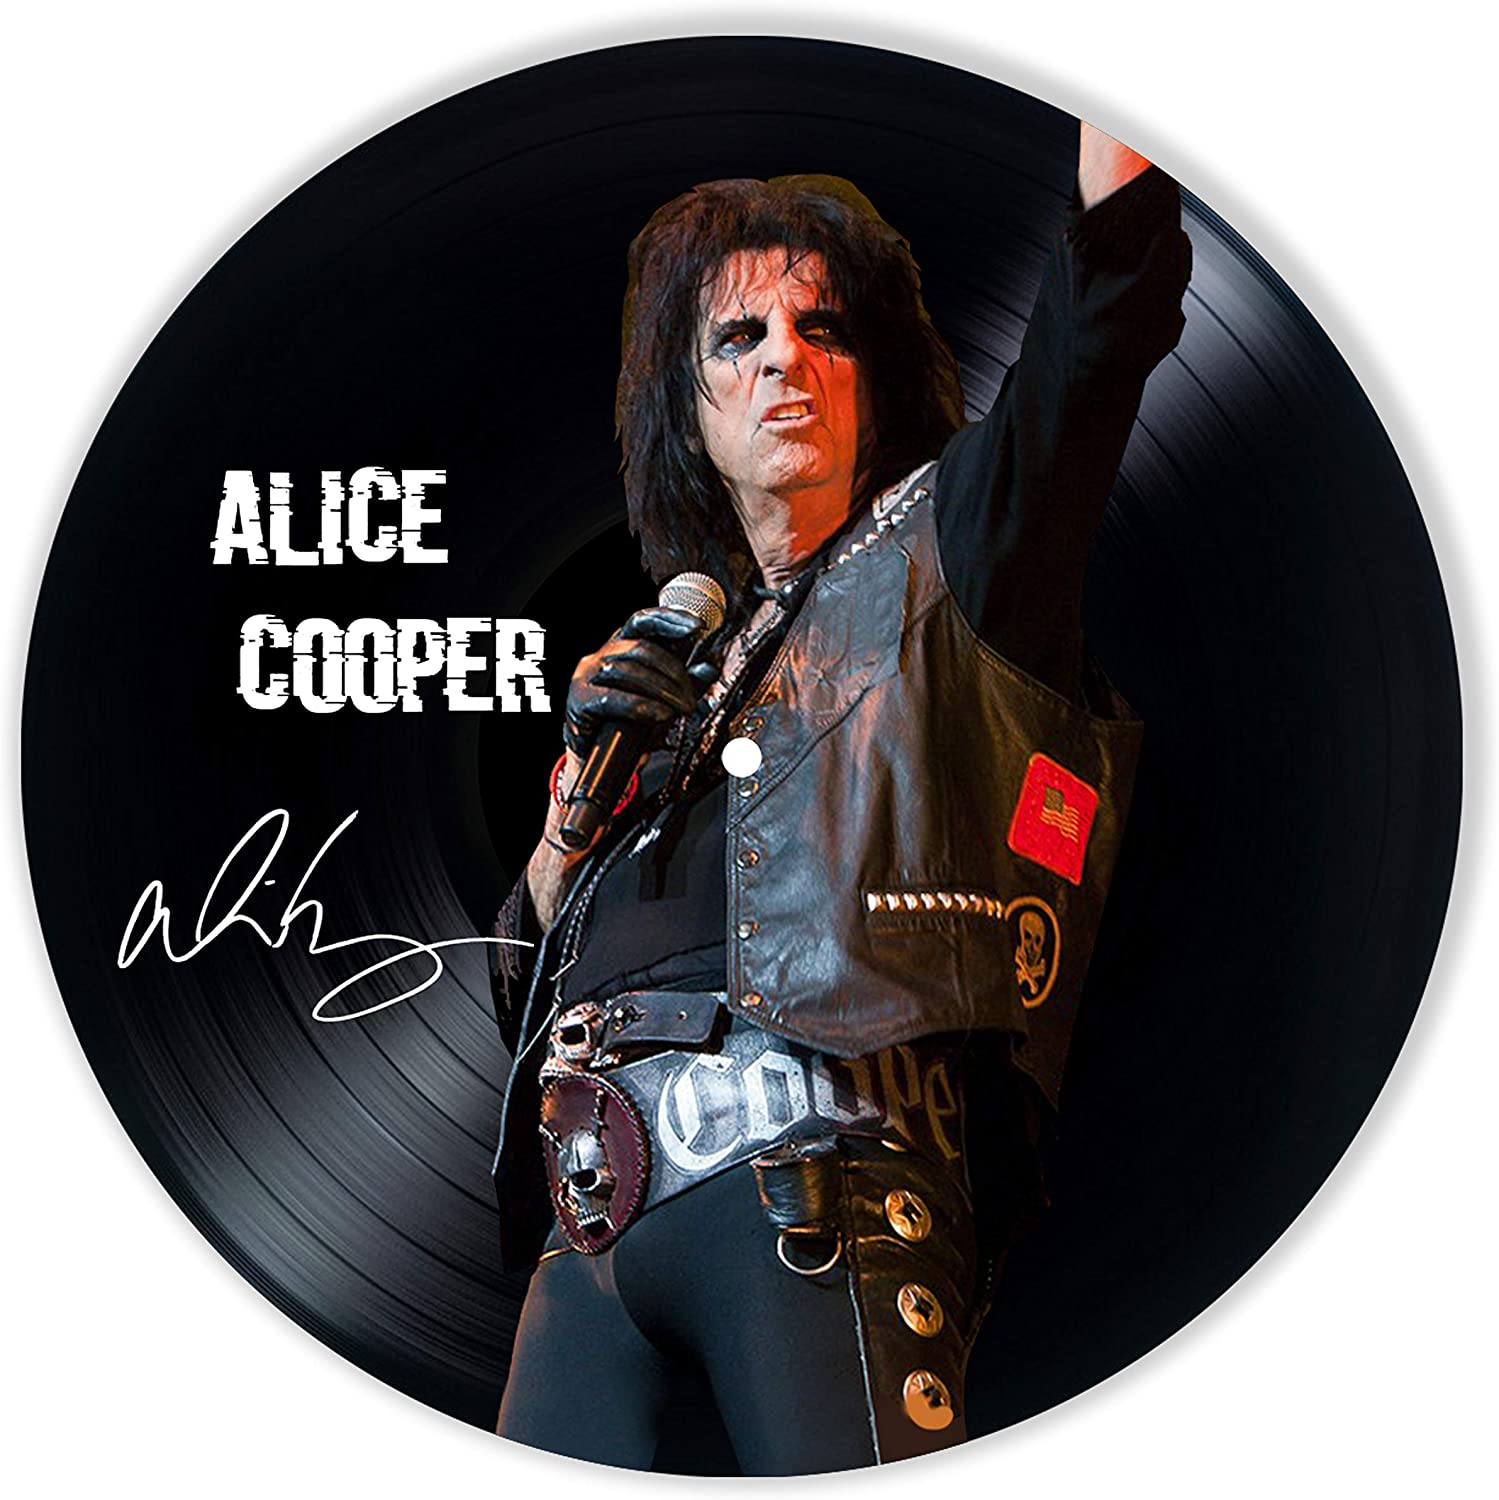 Alice Cooper Vinyl Decor, Wall Decor Painted Alice Cooper, Original Gifts for Music Lovers,The Best Gift for Souvenir, Unique Wall Art Home Decor